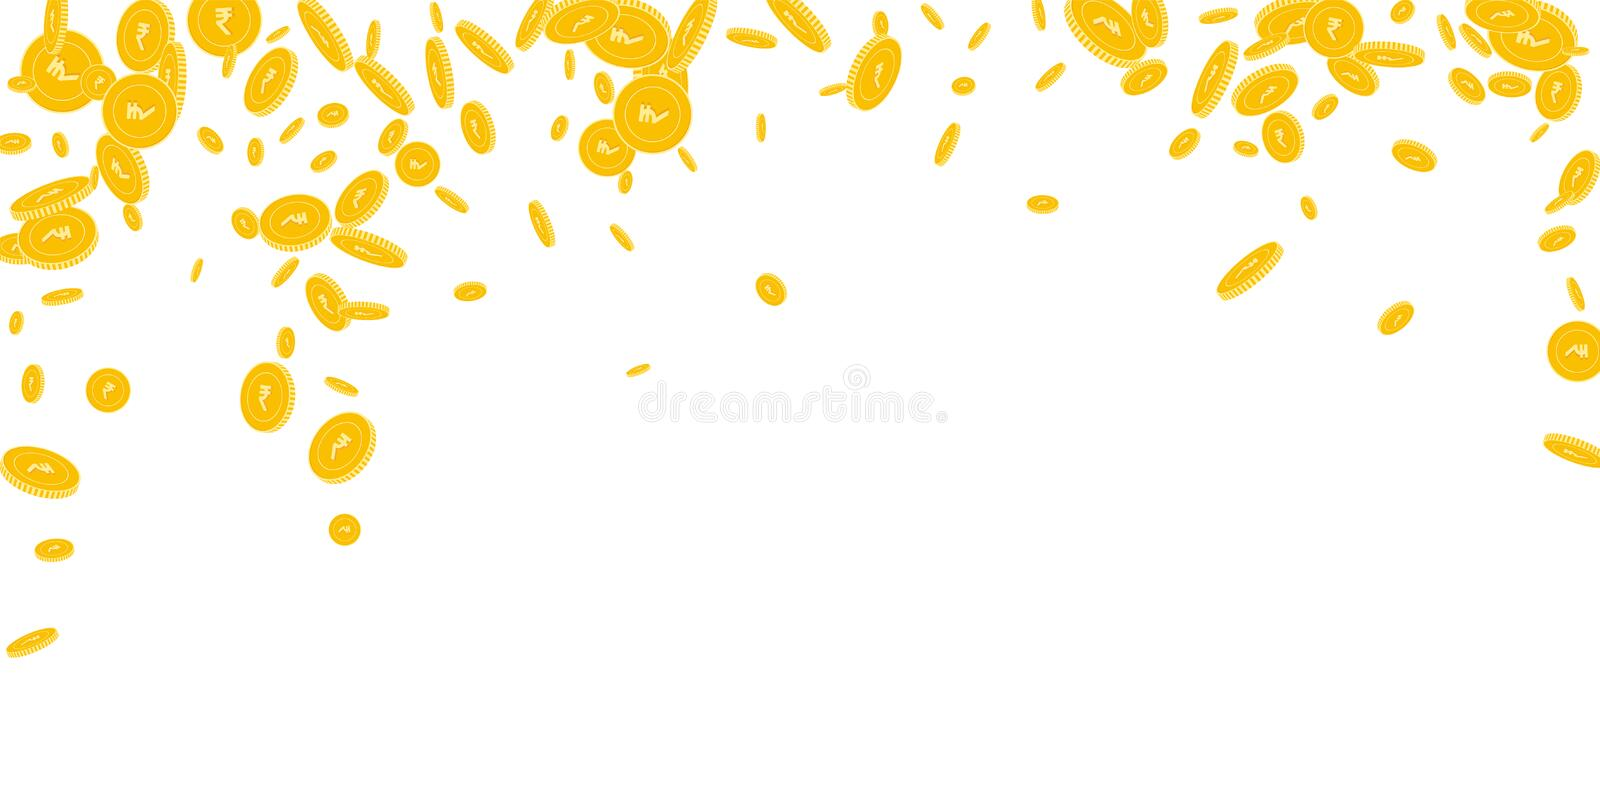 Indian rupee coins falling. Scattered disorderly I. NR coins on white background. Indelible falling rain vector illustration. Jackpot or success concept stock illustration